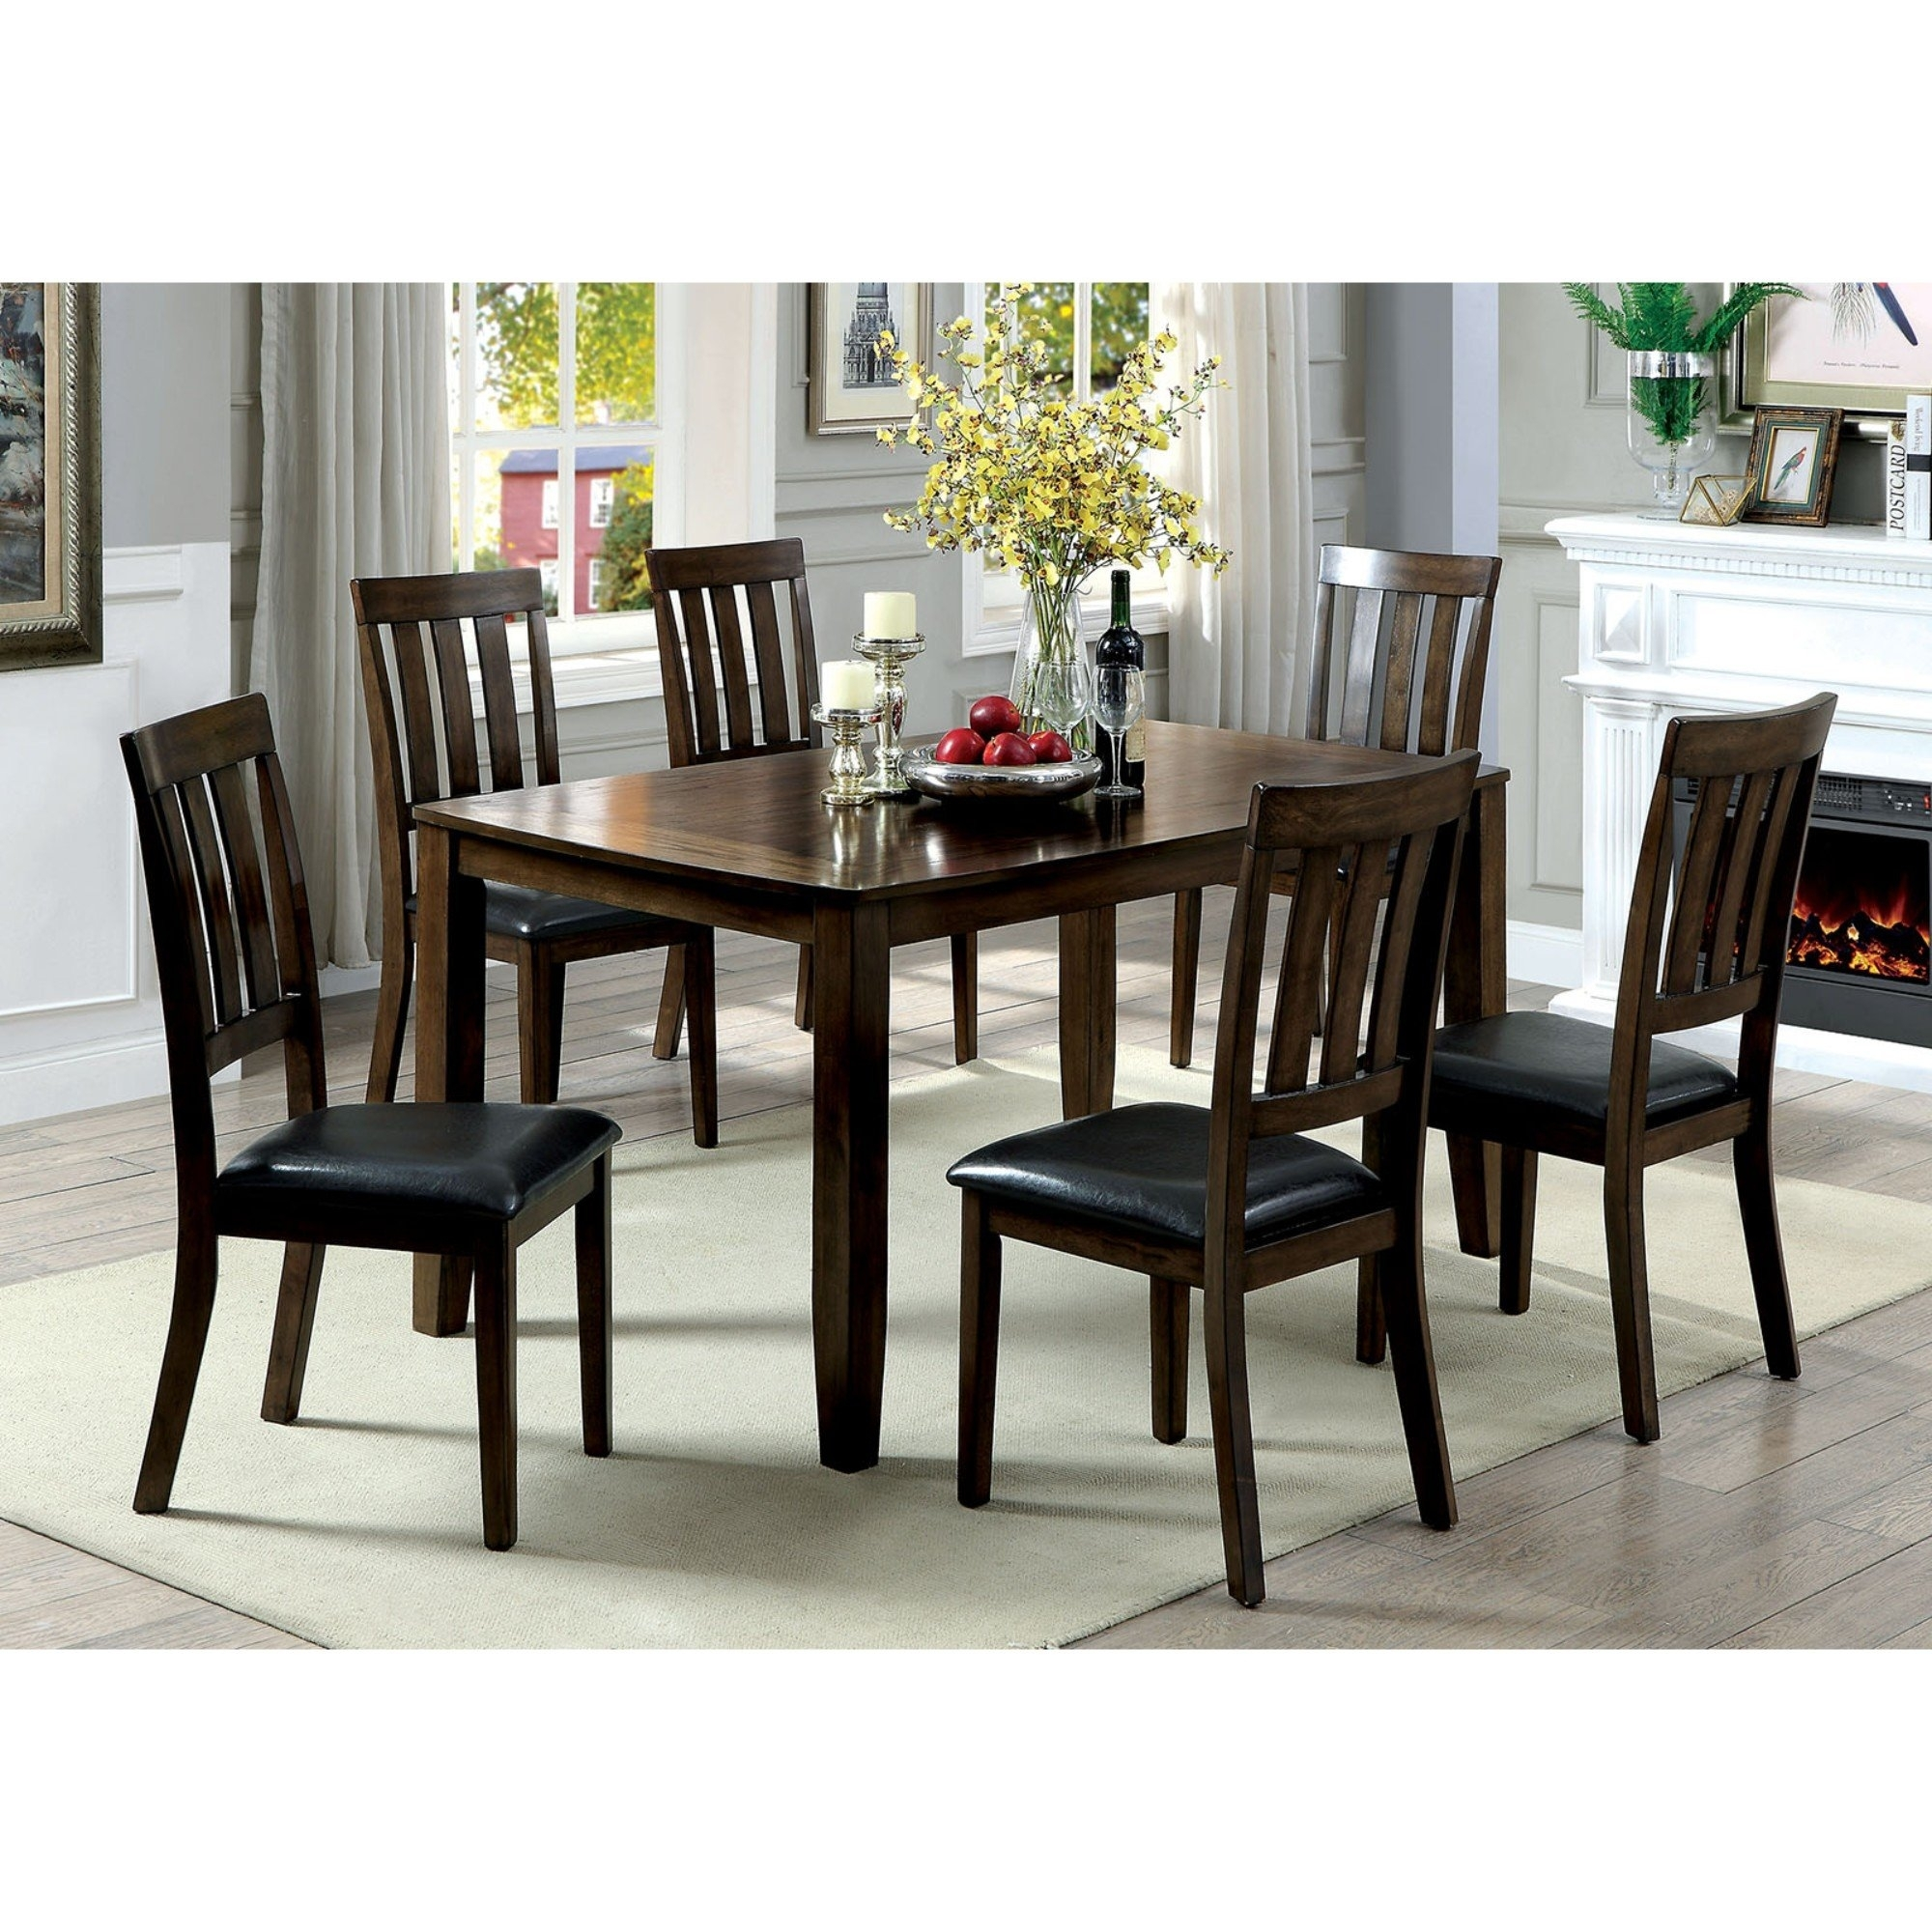 Millwood Pines Devon Wooden 7 Piece Counter Height Dining Table Set With Regard To Recent Candice Ii 7 Piece Extension Rectangle Dining Sets (Photo 4 of 20)